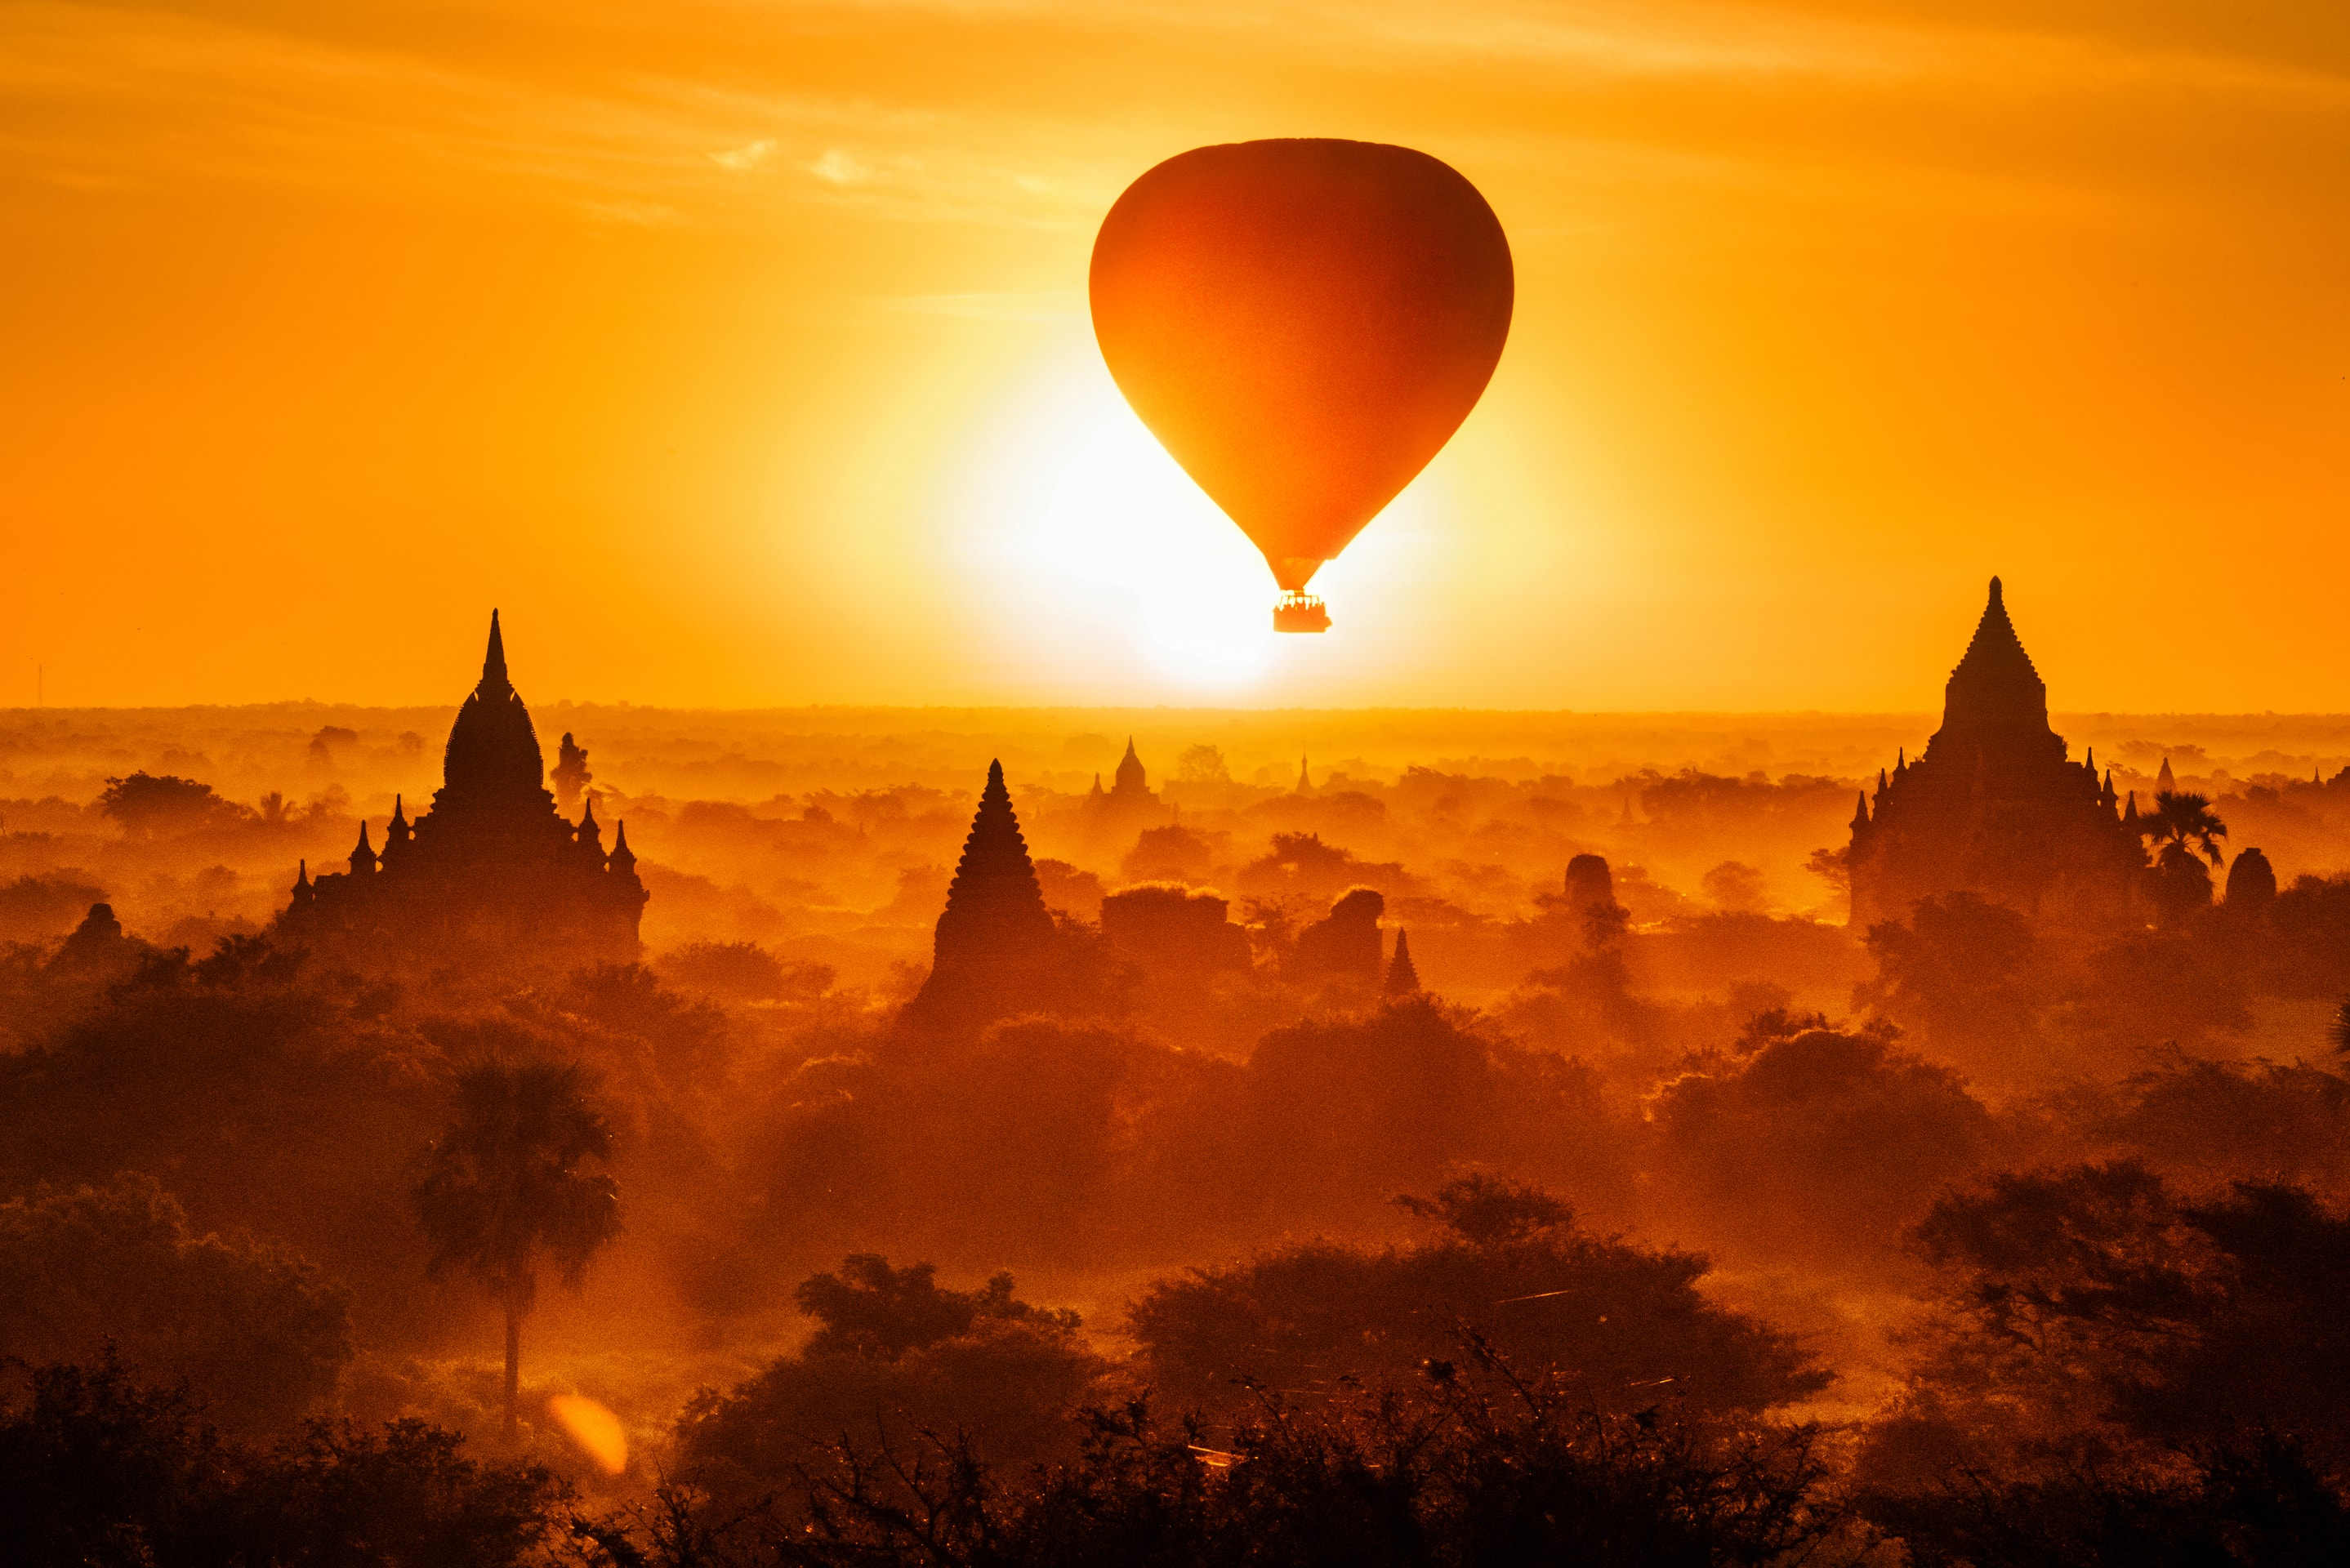 Fine Art Print by Karmen Harley - A Hot Air Balloon Eclipse The Rising Sun Myanmar